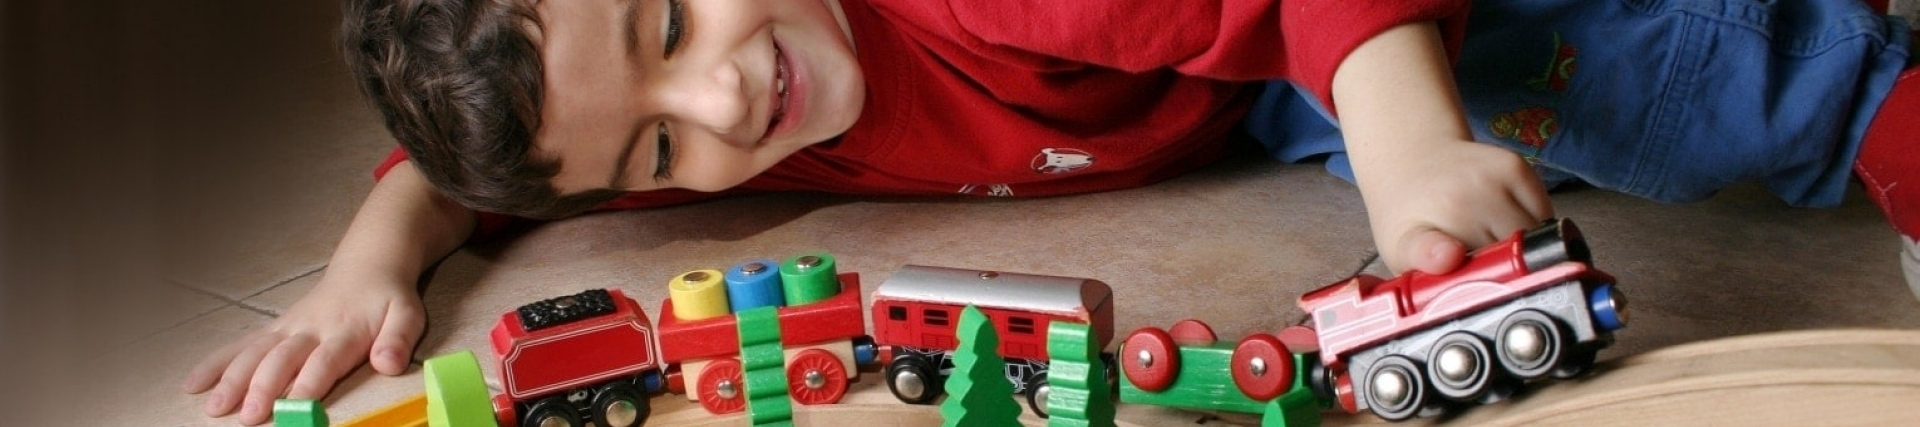 boy_with_train-0001.jpg